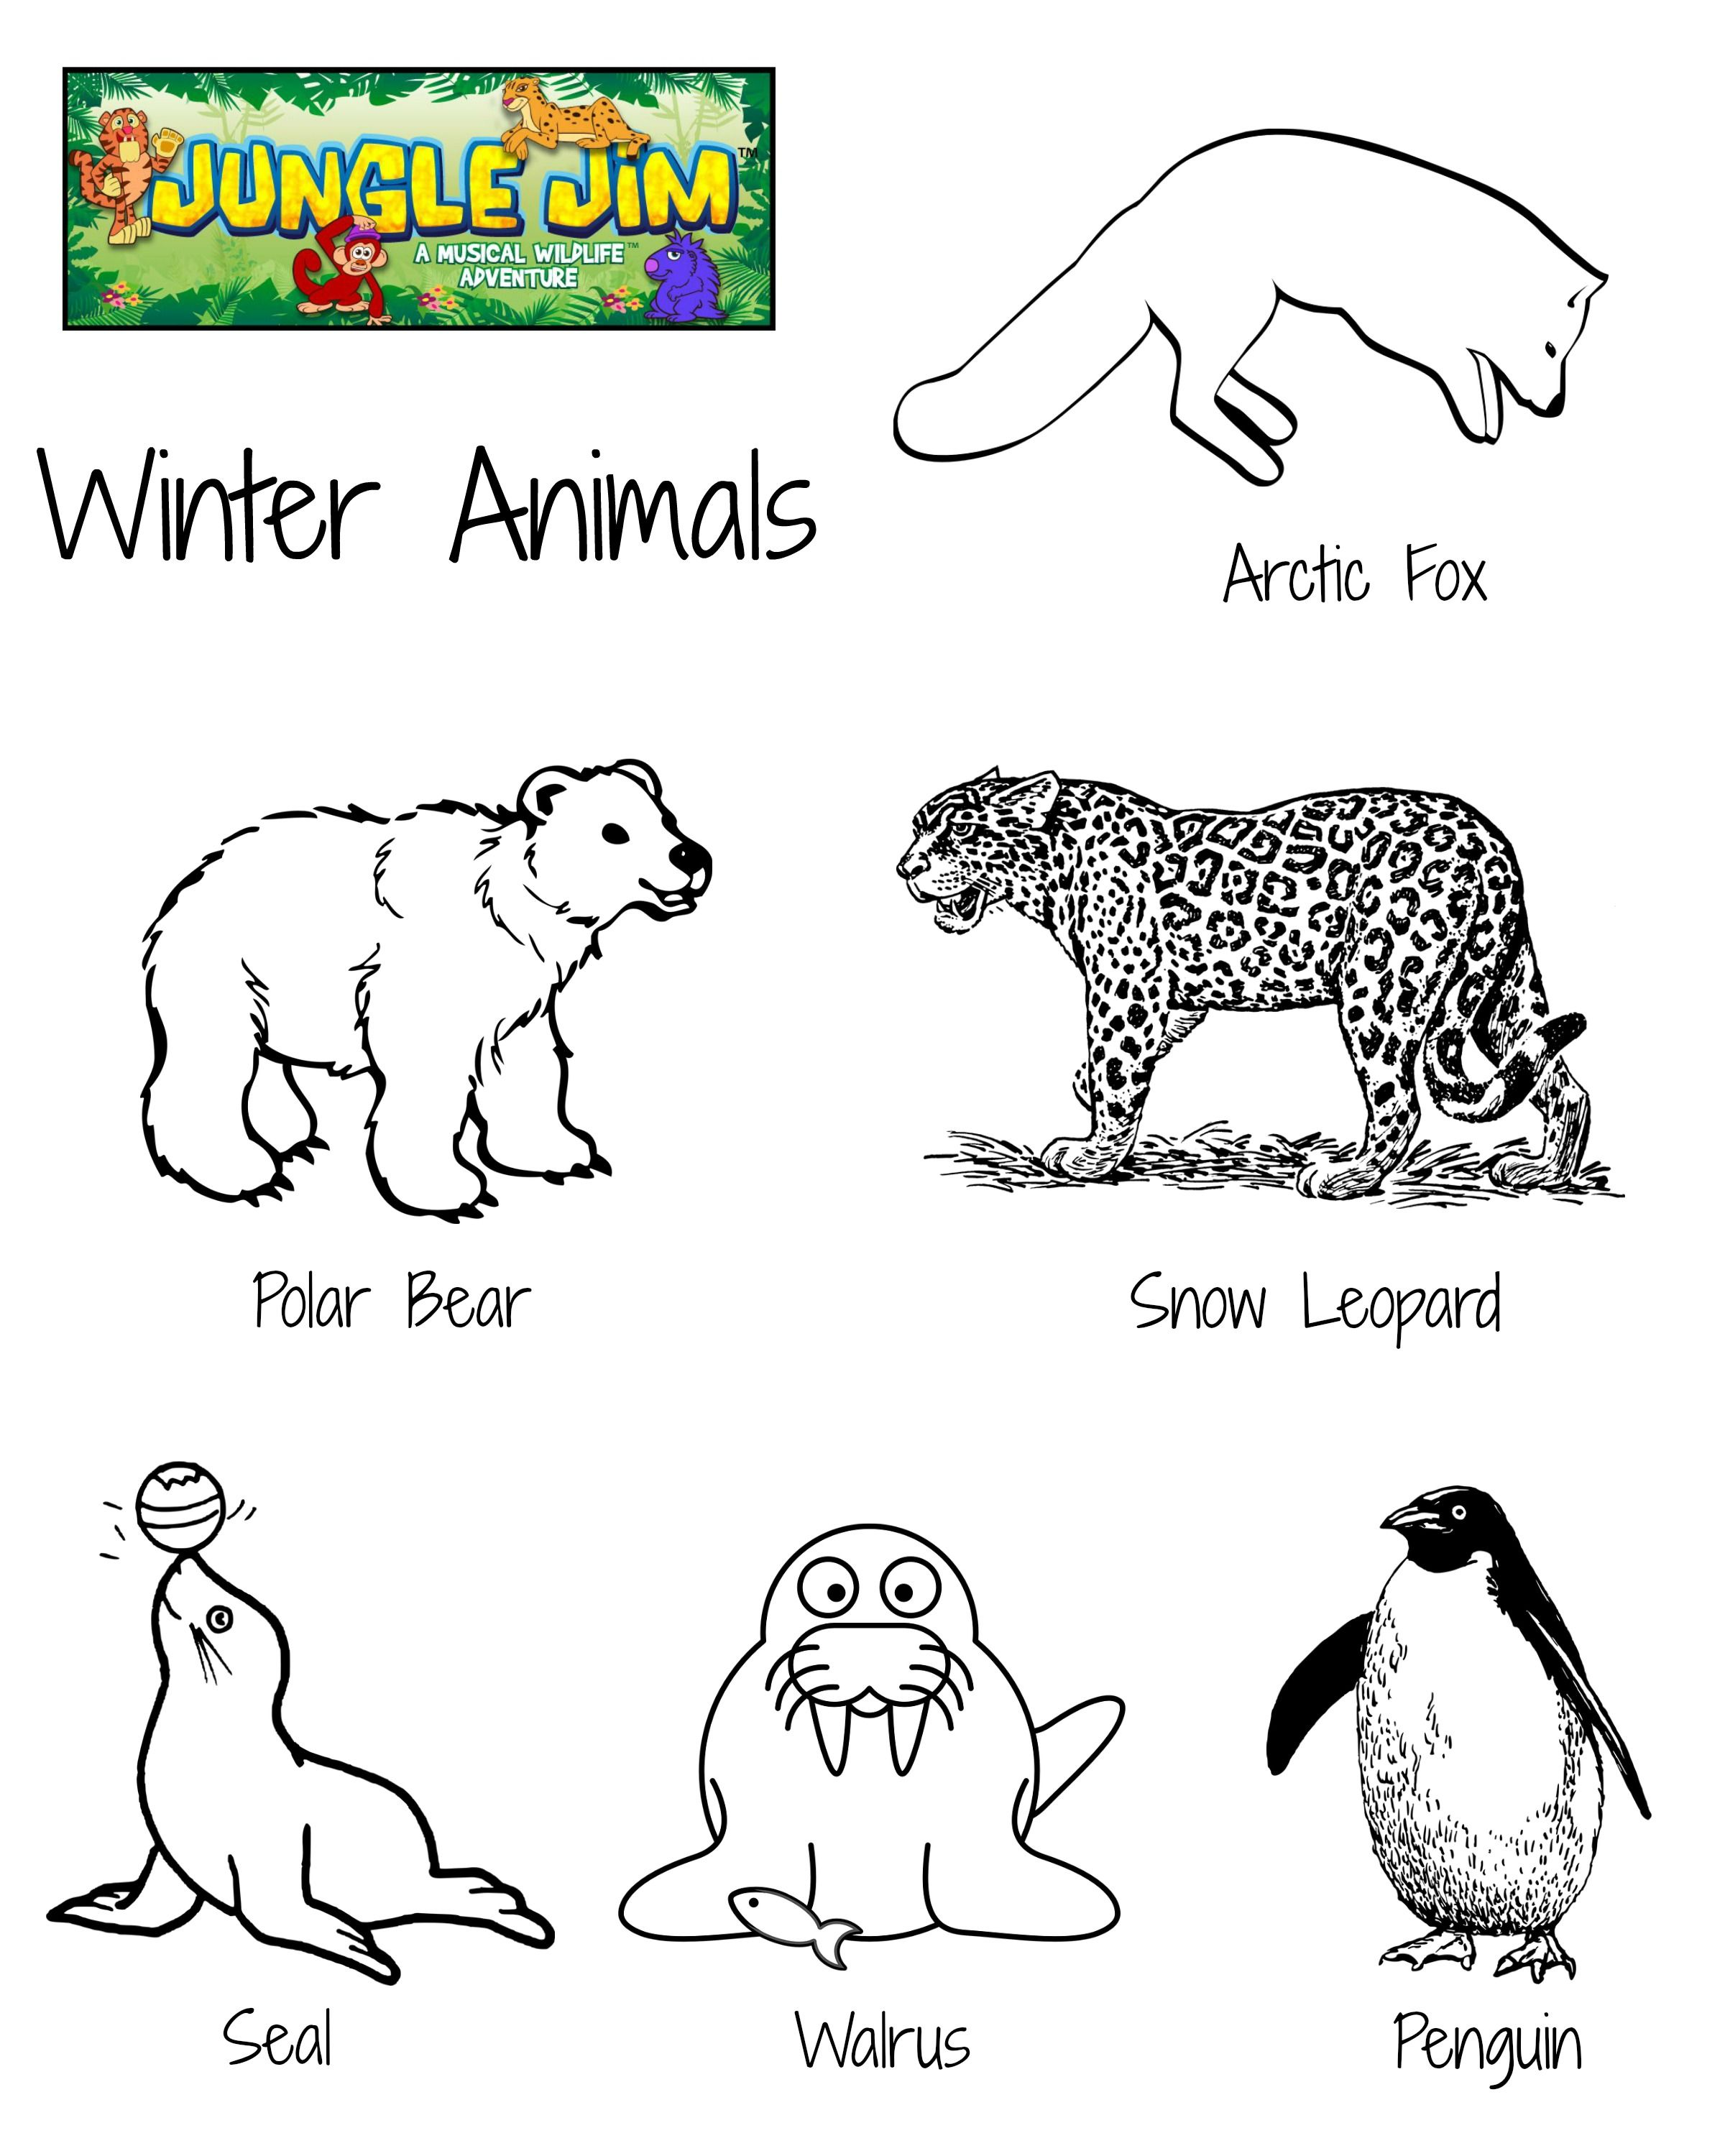 Winter Animal Free Printable Coloring Page With Lots Of Cute